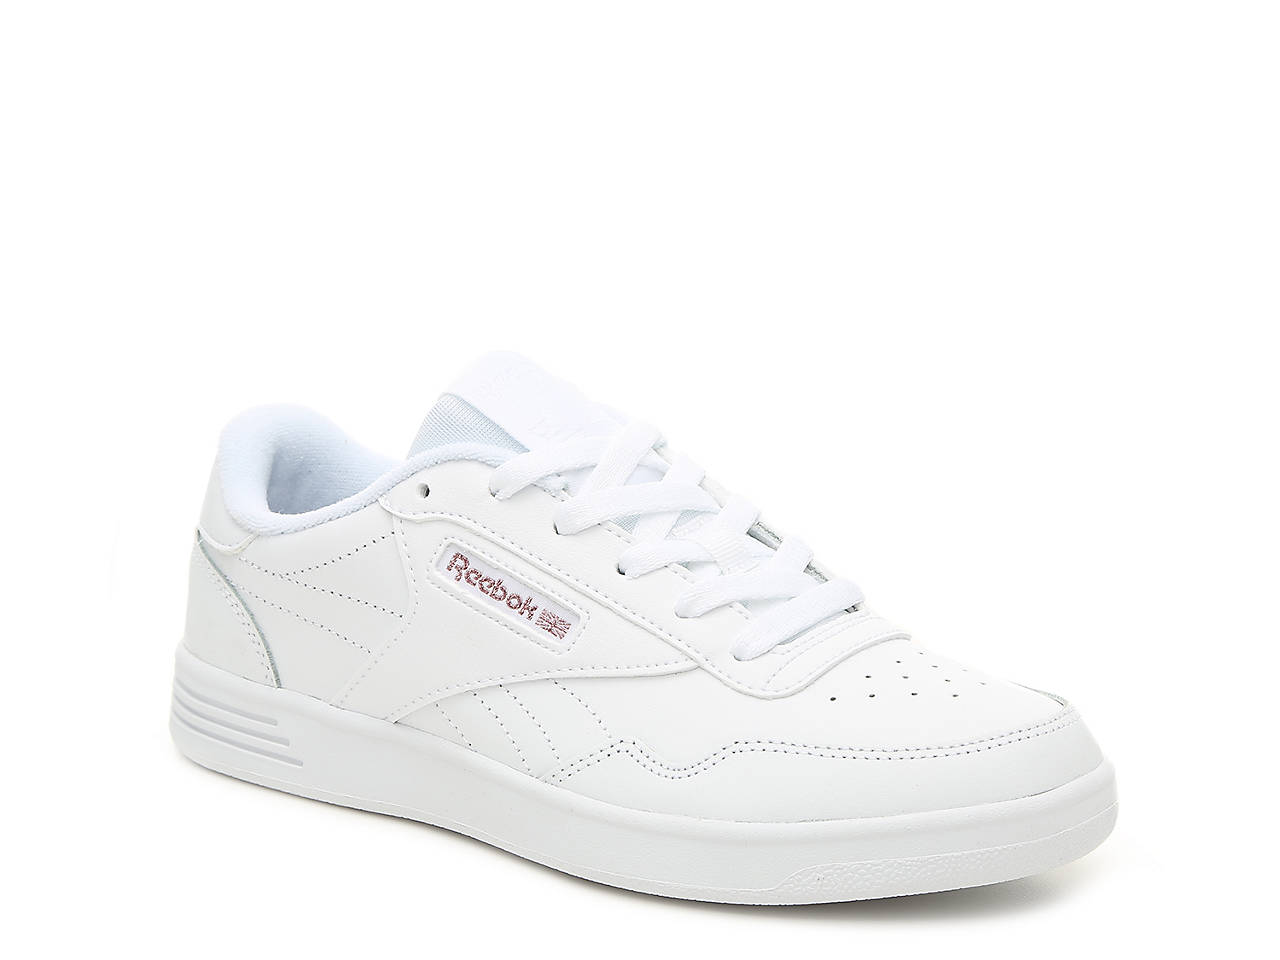 2a8f9135534 Reebok Club Memt Sneaker - Women s Women s Shoes